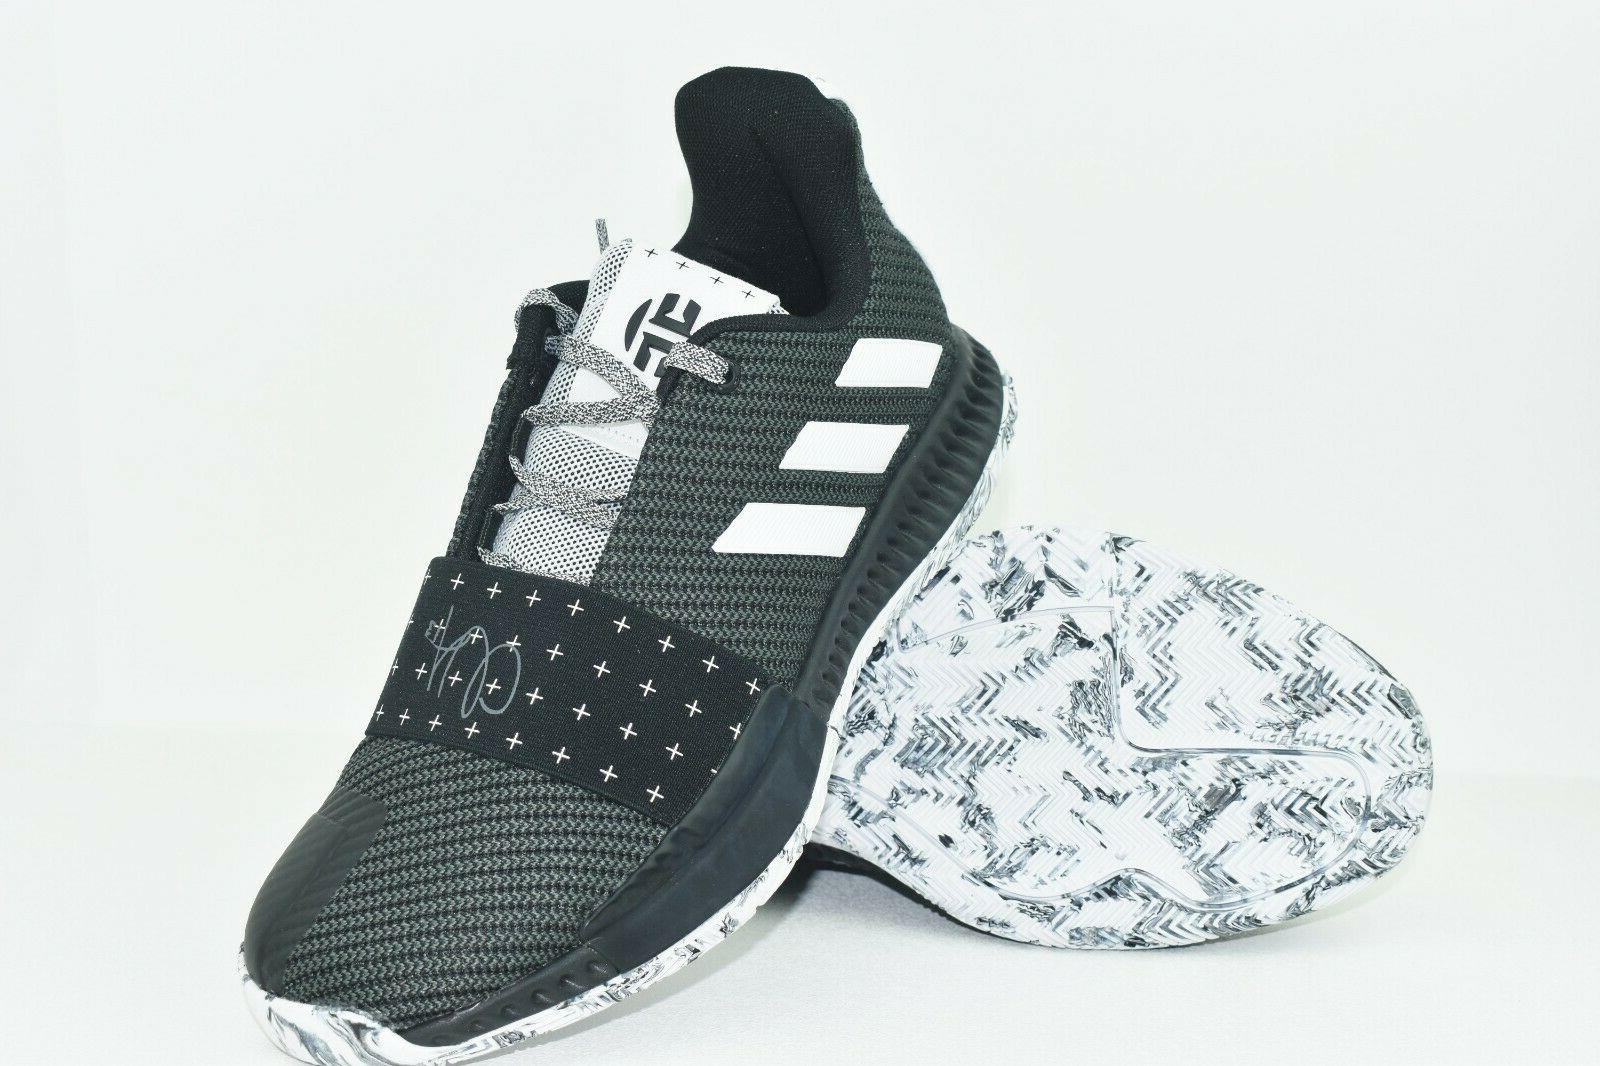 Adidas Harden Shoes AC7616